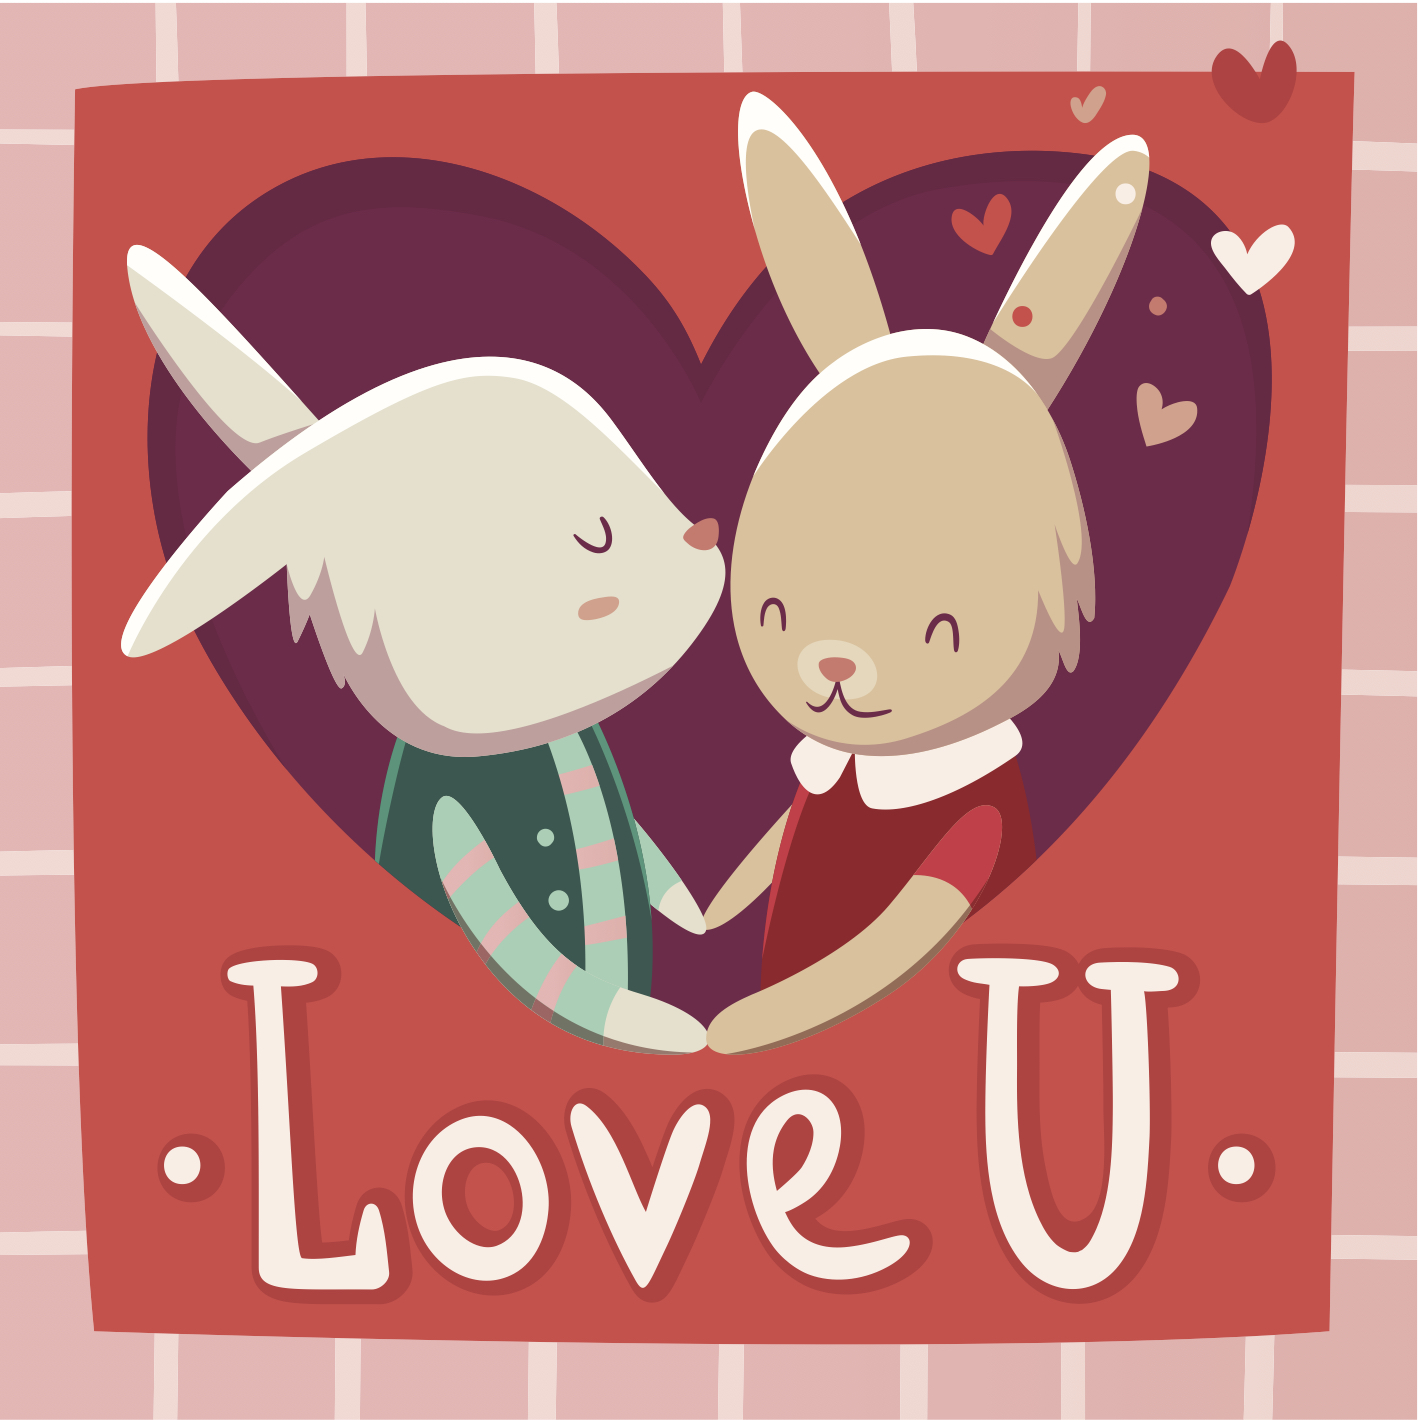 Valentine's Day eCard with two cartoon bunnies holding hands